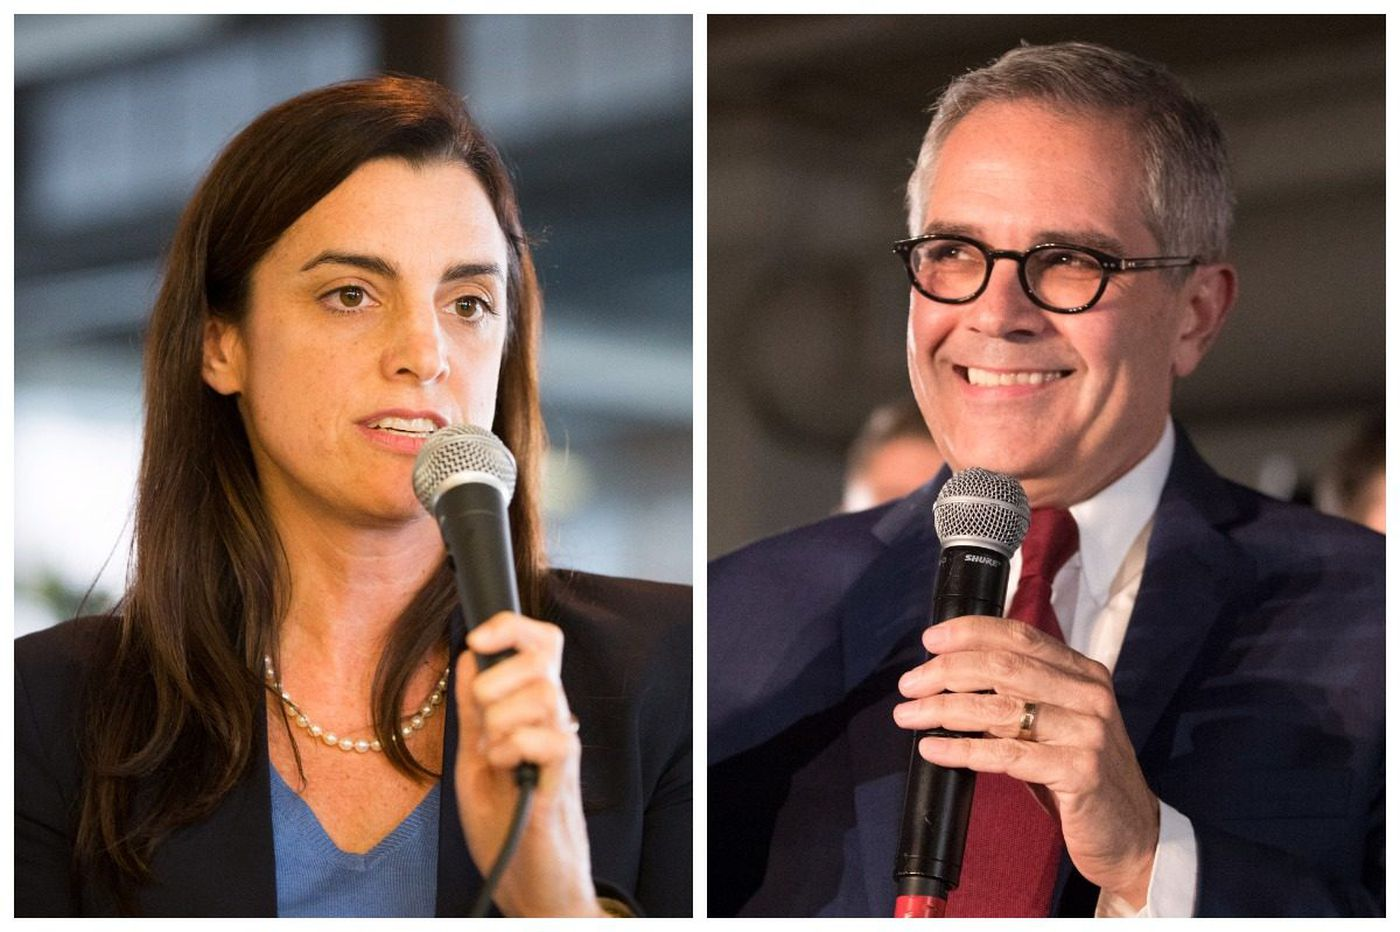 Will Krasner and Rhynhart usher in new blood for Philly Democrats?